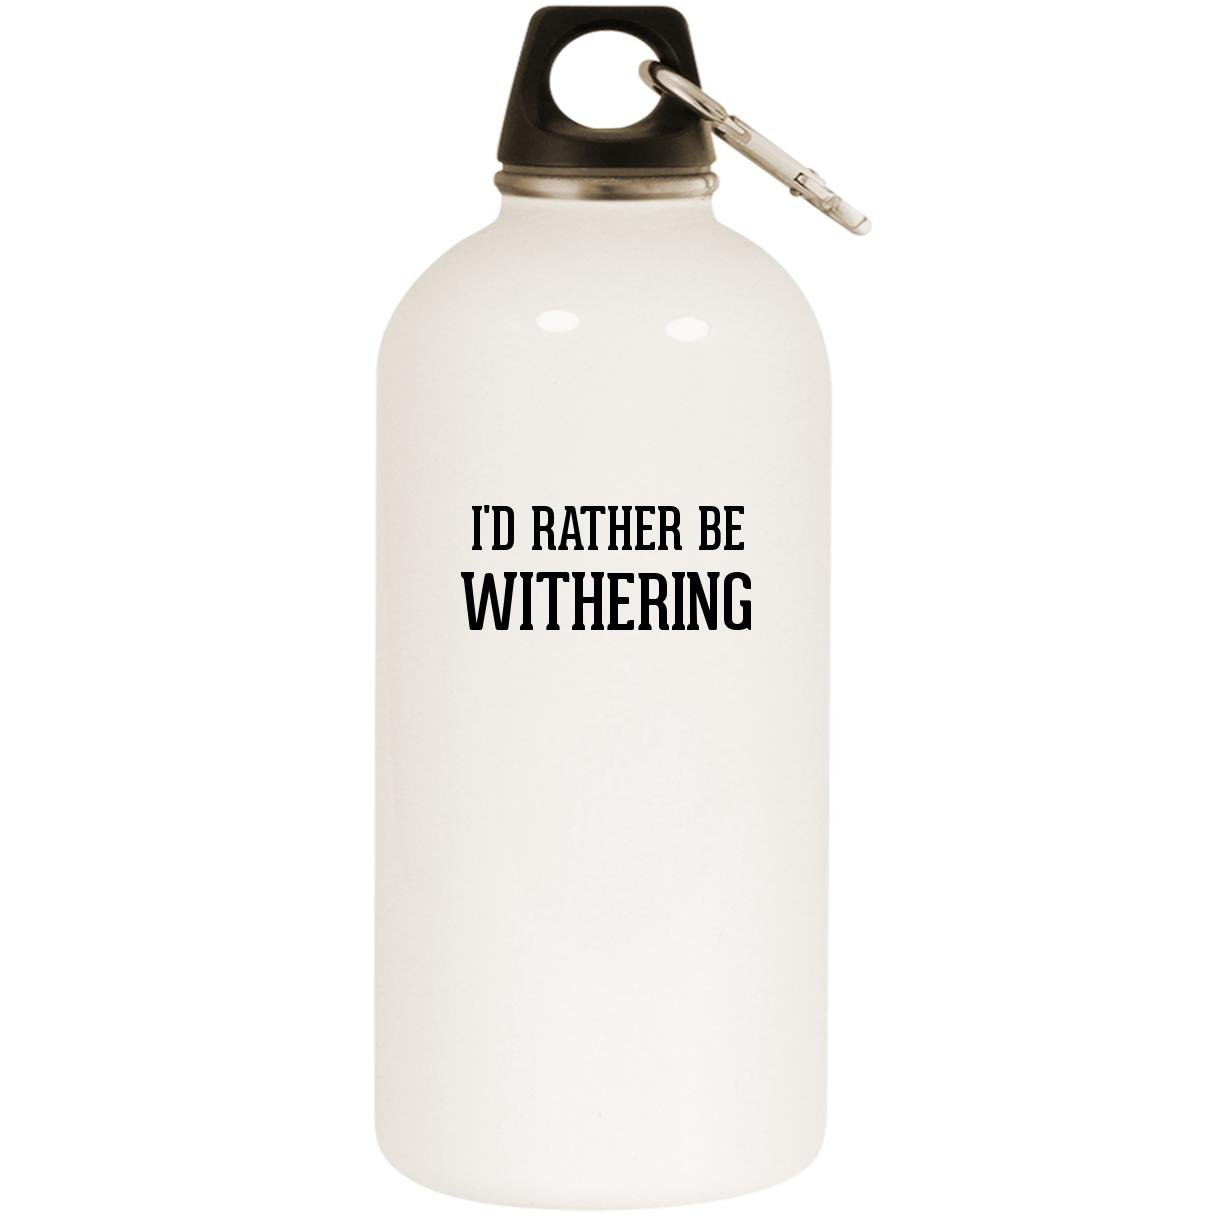 I'd Rather Be WITHERING - White 20oz Stainless Steel Water Bottle with Carabiner